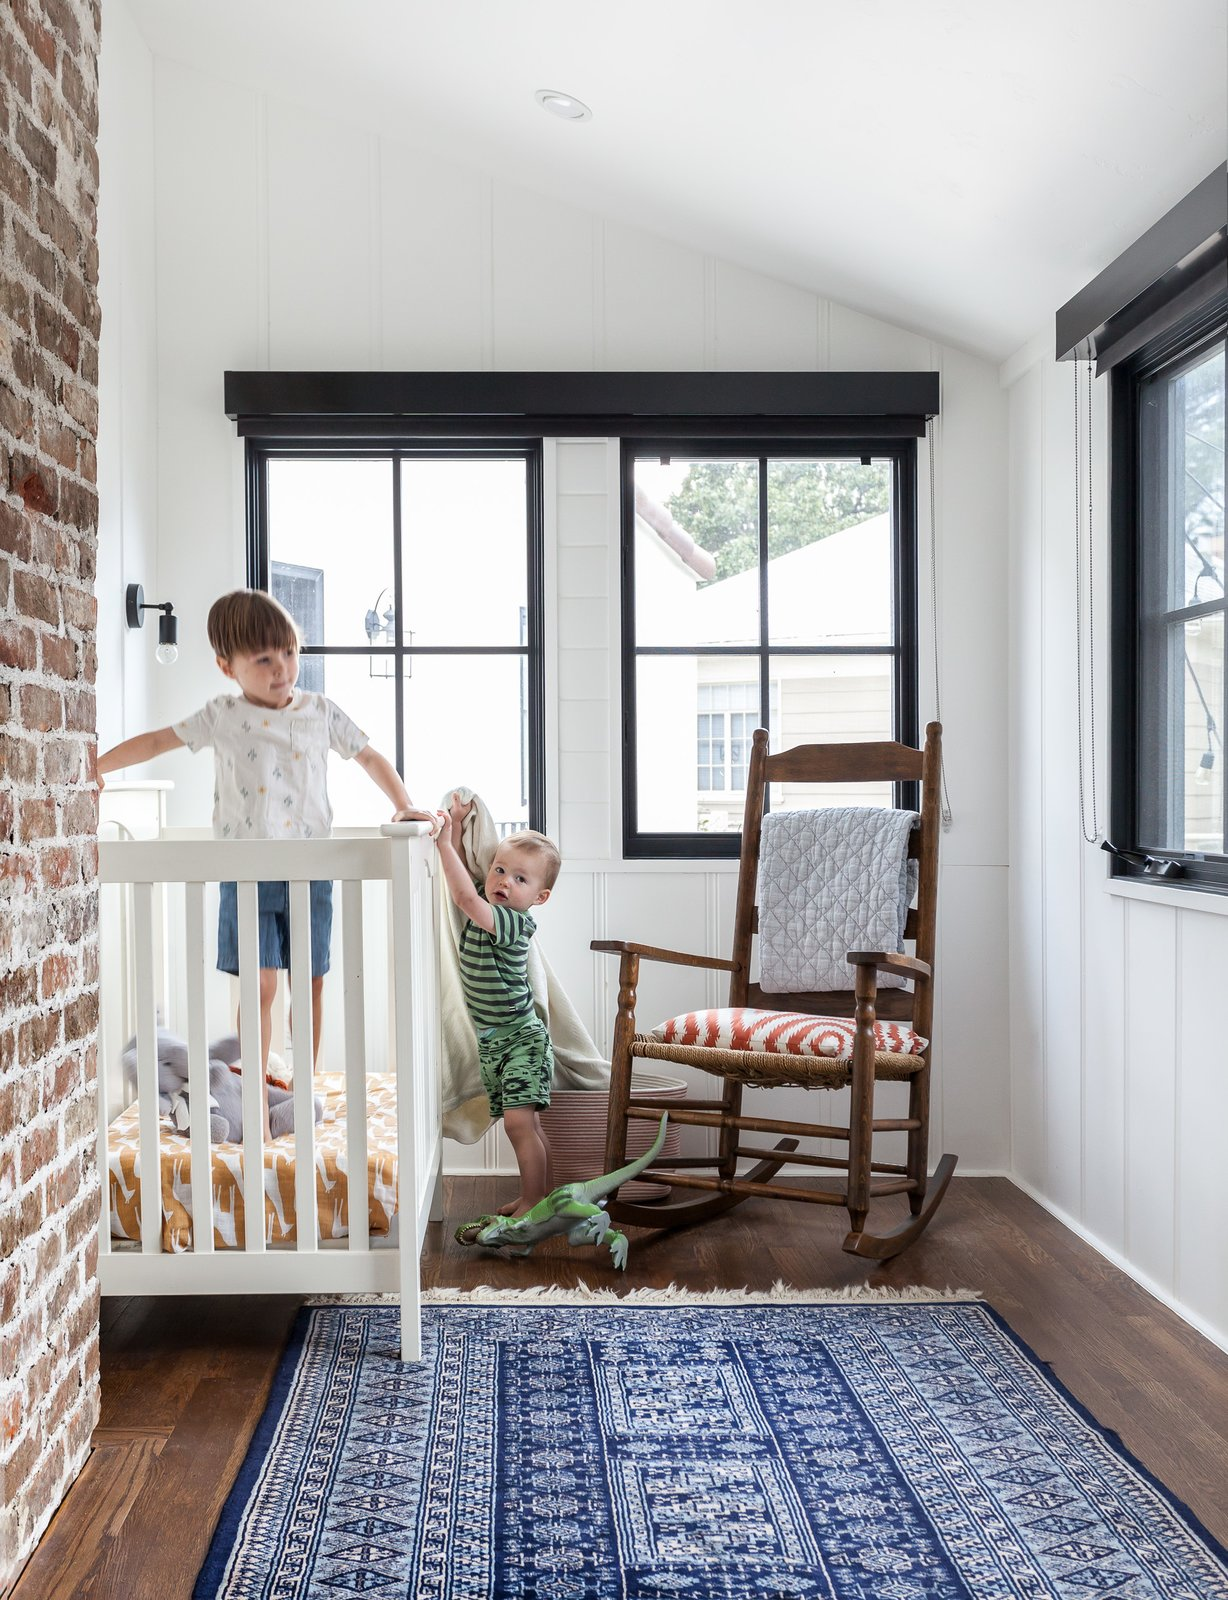 Spanish Revival by Colossus Mfg Kid's Room